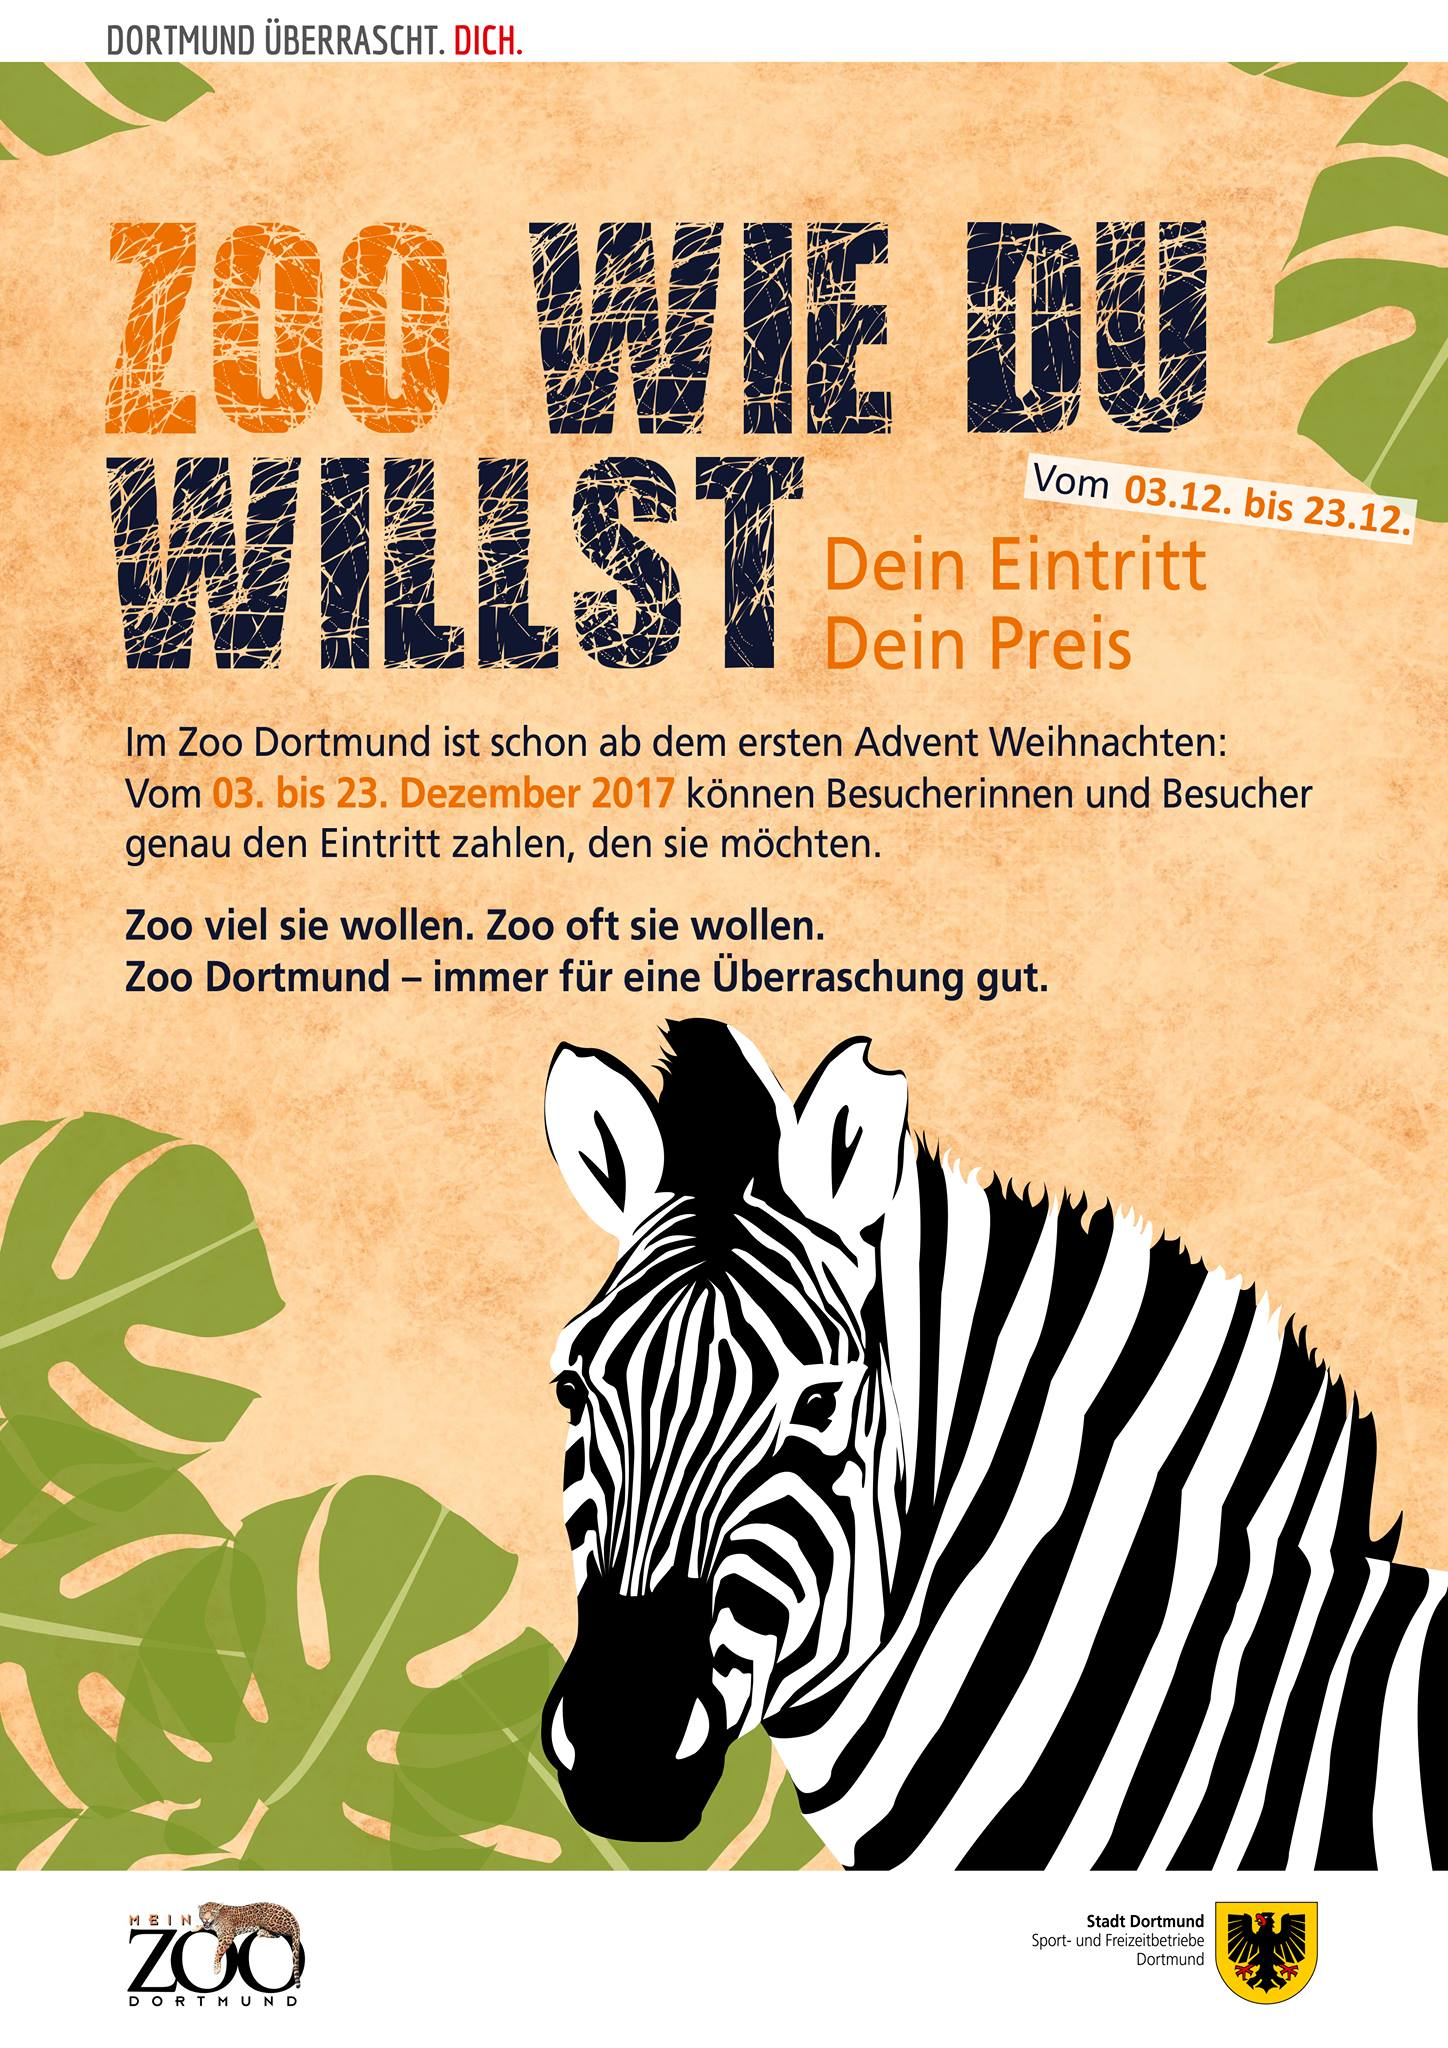 zoo dortmund im dezember 2017 mit zahl was du willst aktion. Black Bedroom Furniture Sets. Home Design Ideas